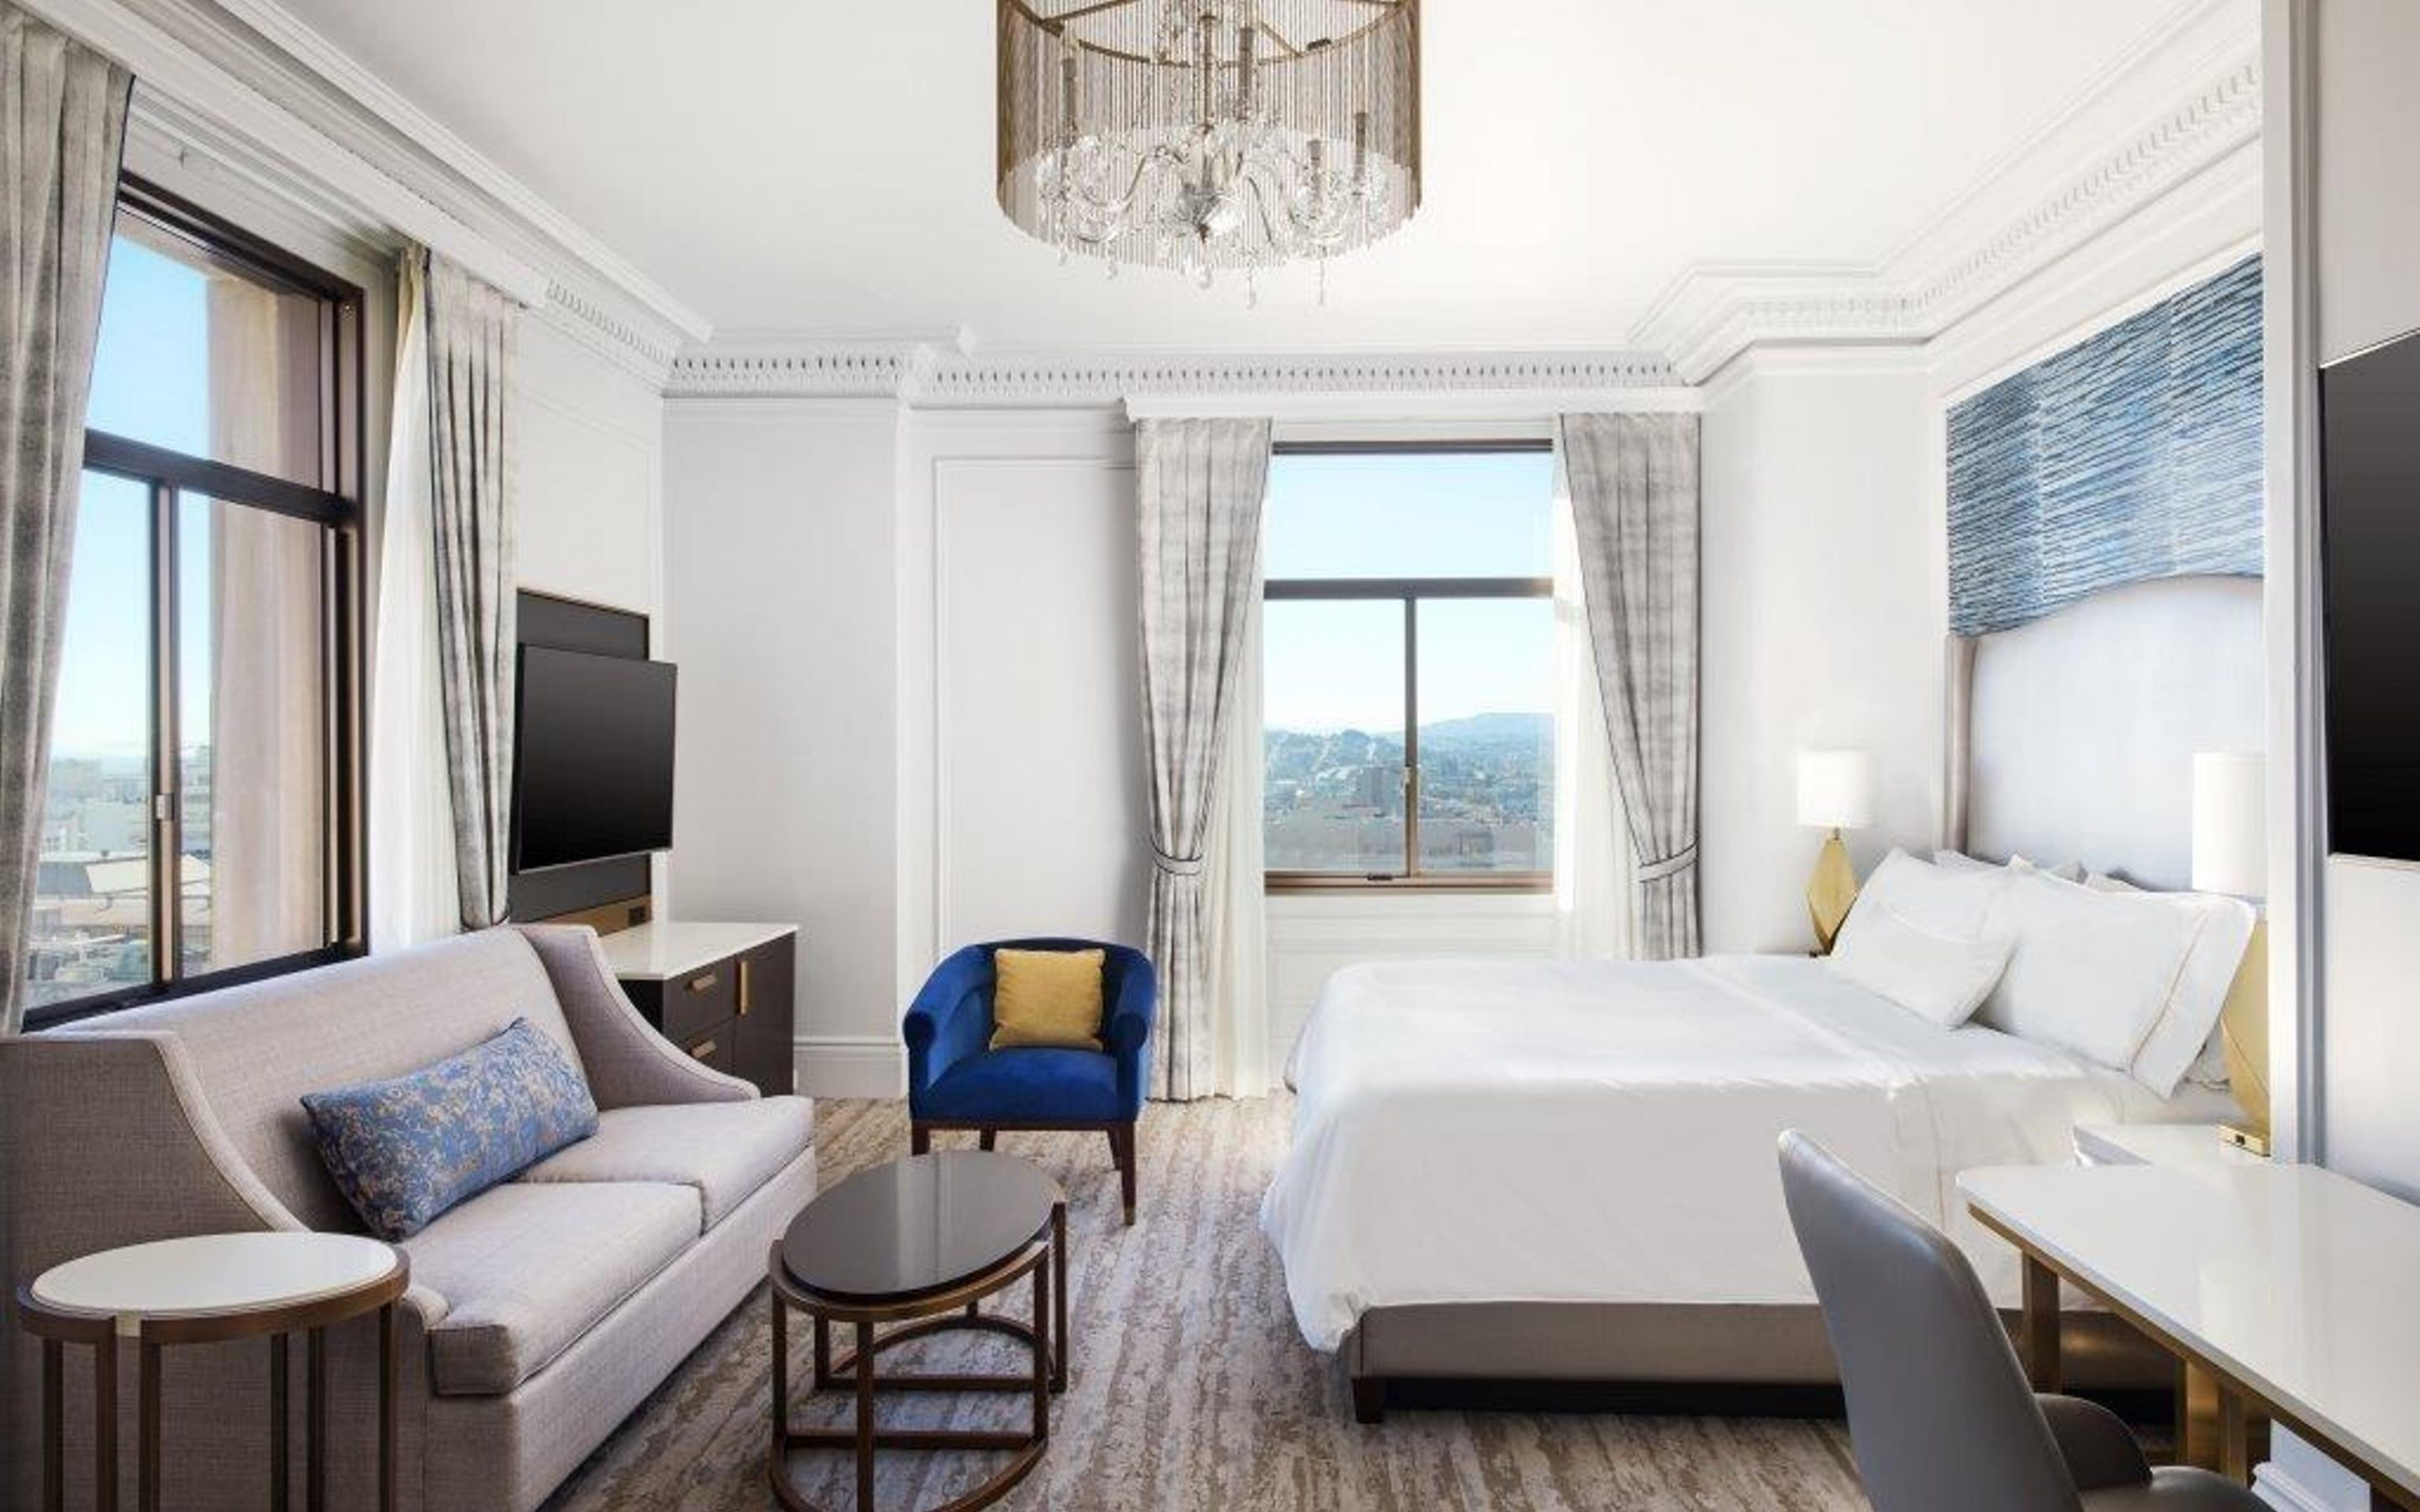 The Westin St. Francis Completes $45 Million Renovation of Historic Landmark Building